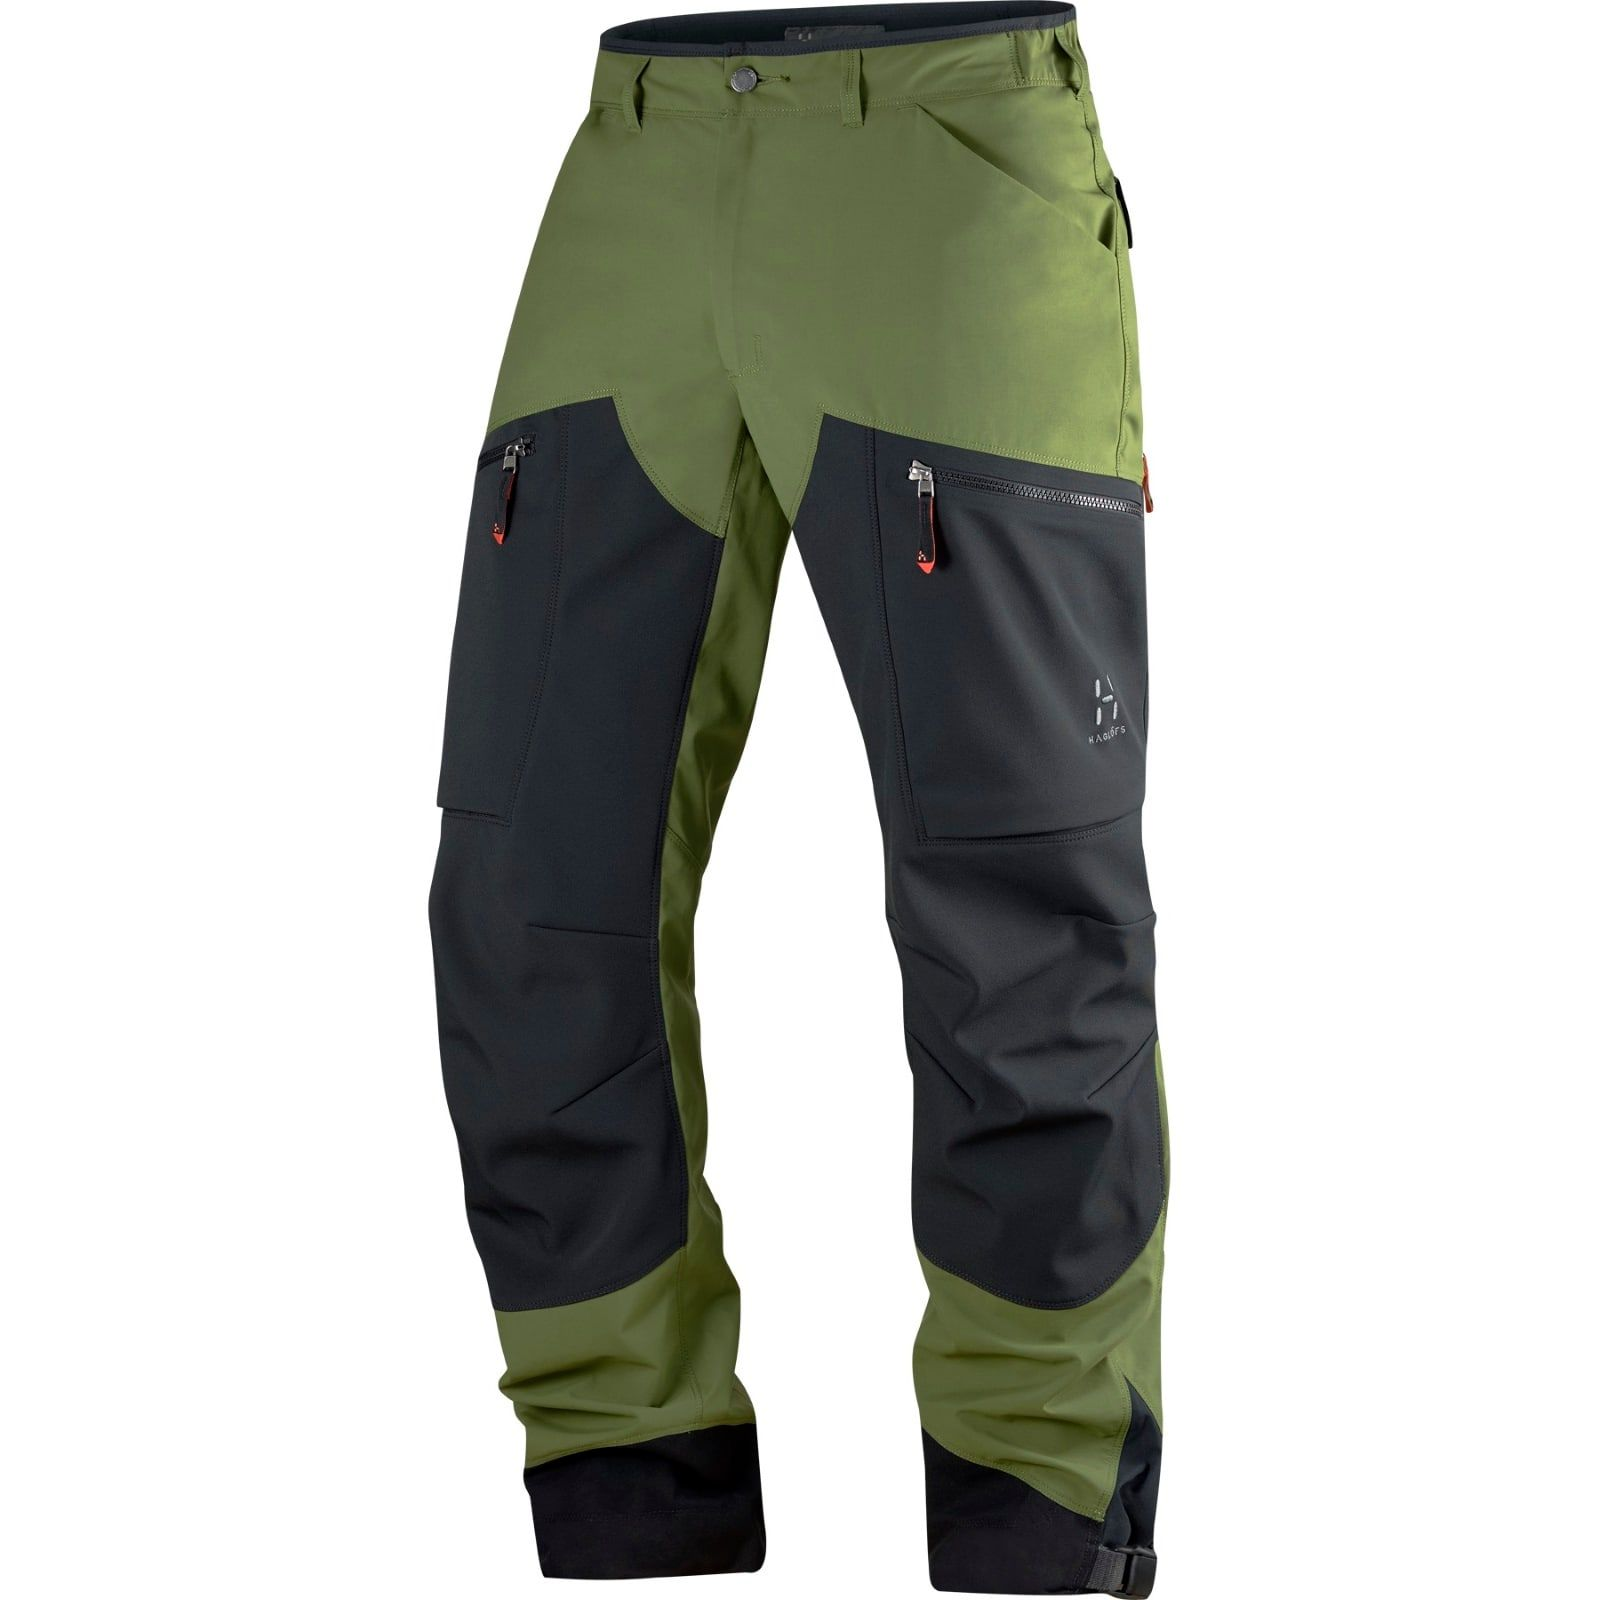 Haglofs Rugged Mountain Pant Pro Mens Fashion Rugged Mens Tshirts Fashion Mens Fashio